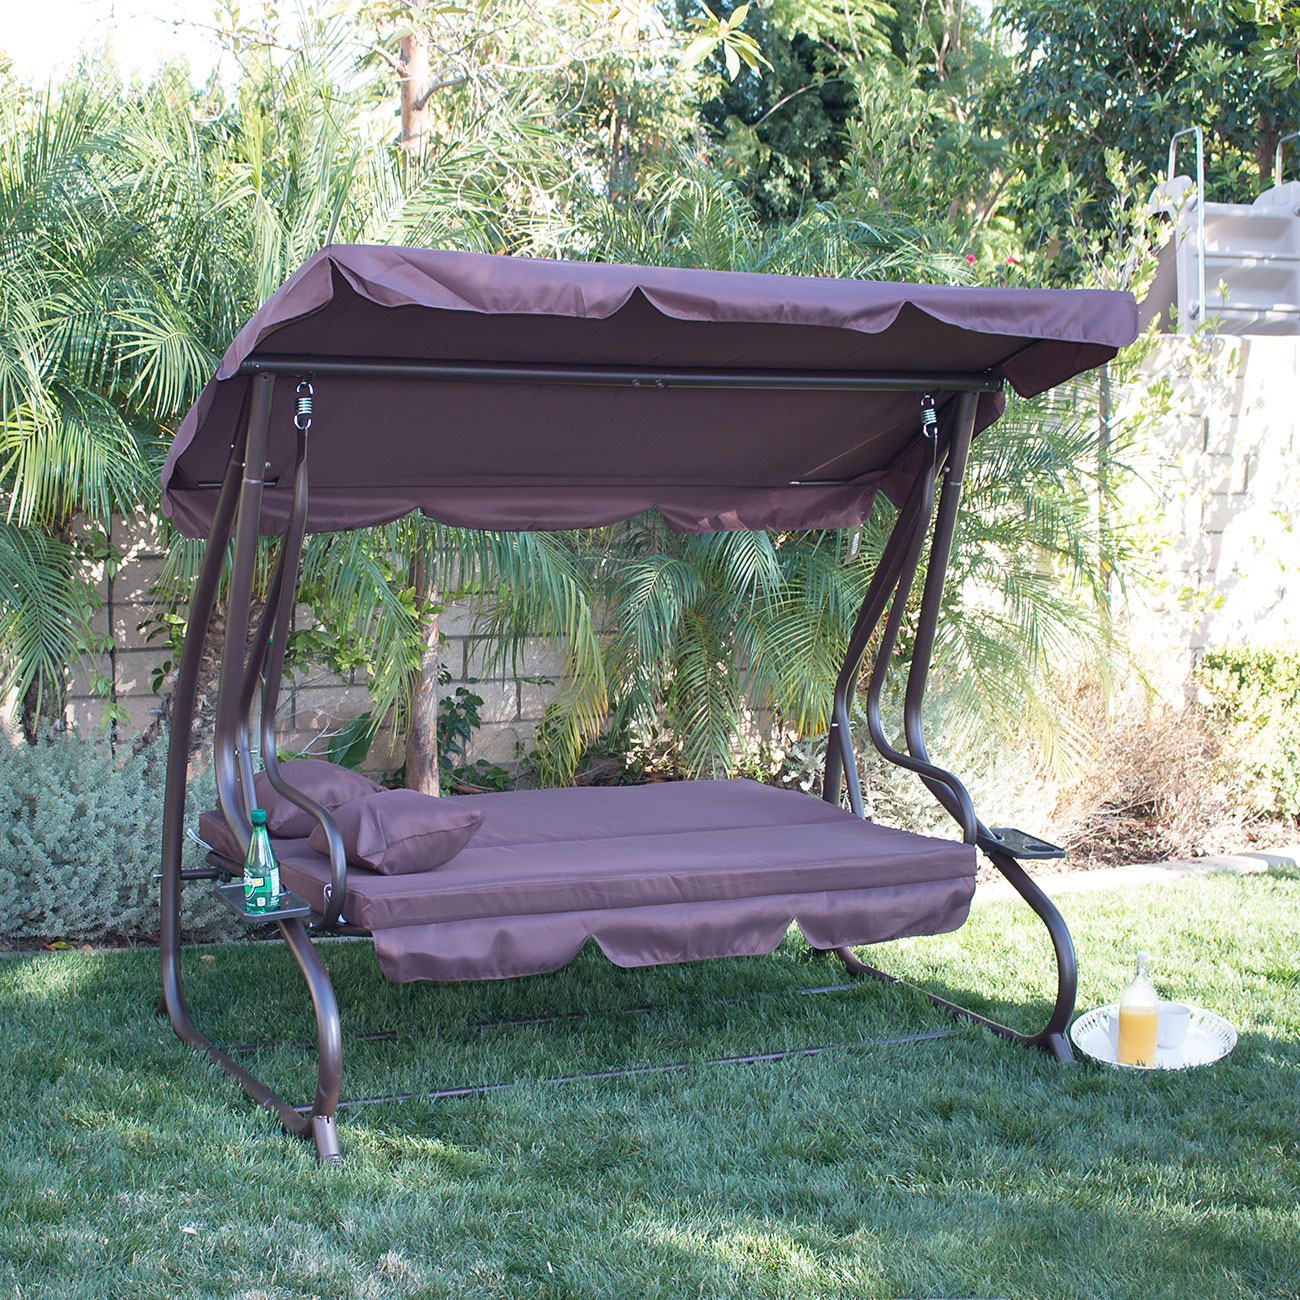 swing chair plan wicker wingback cushions outdoor porch bed patio deck seat furniture brown